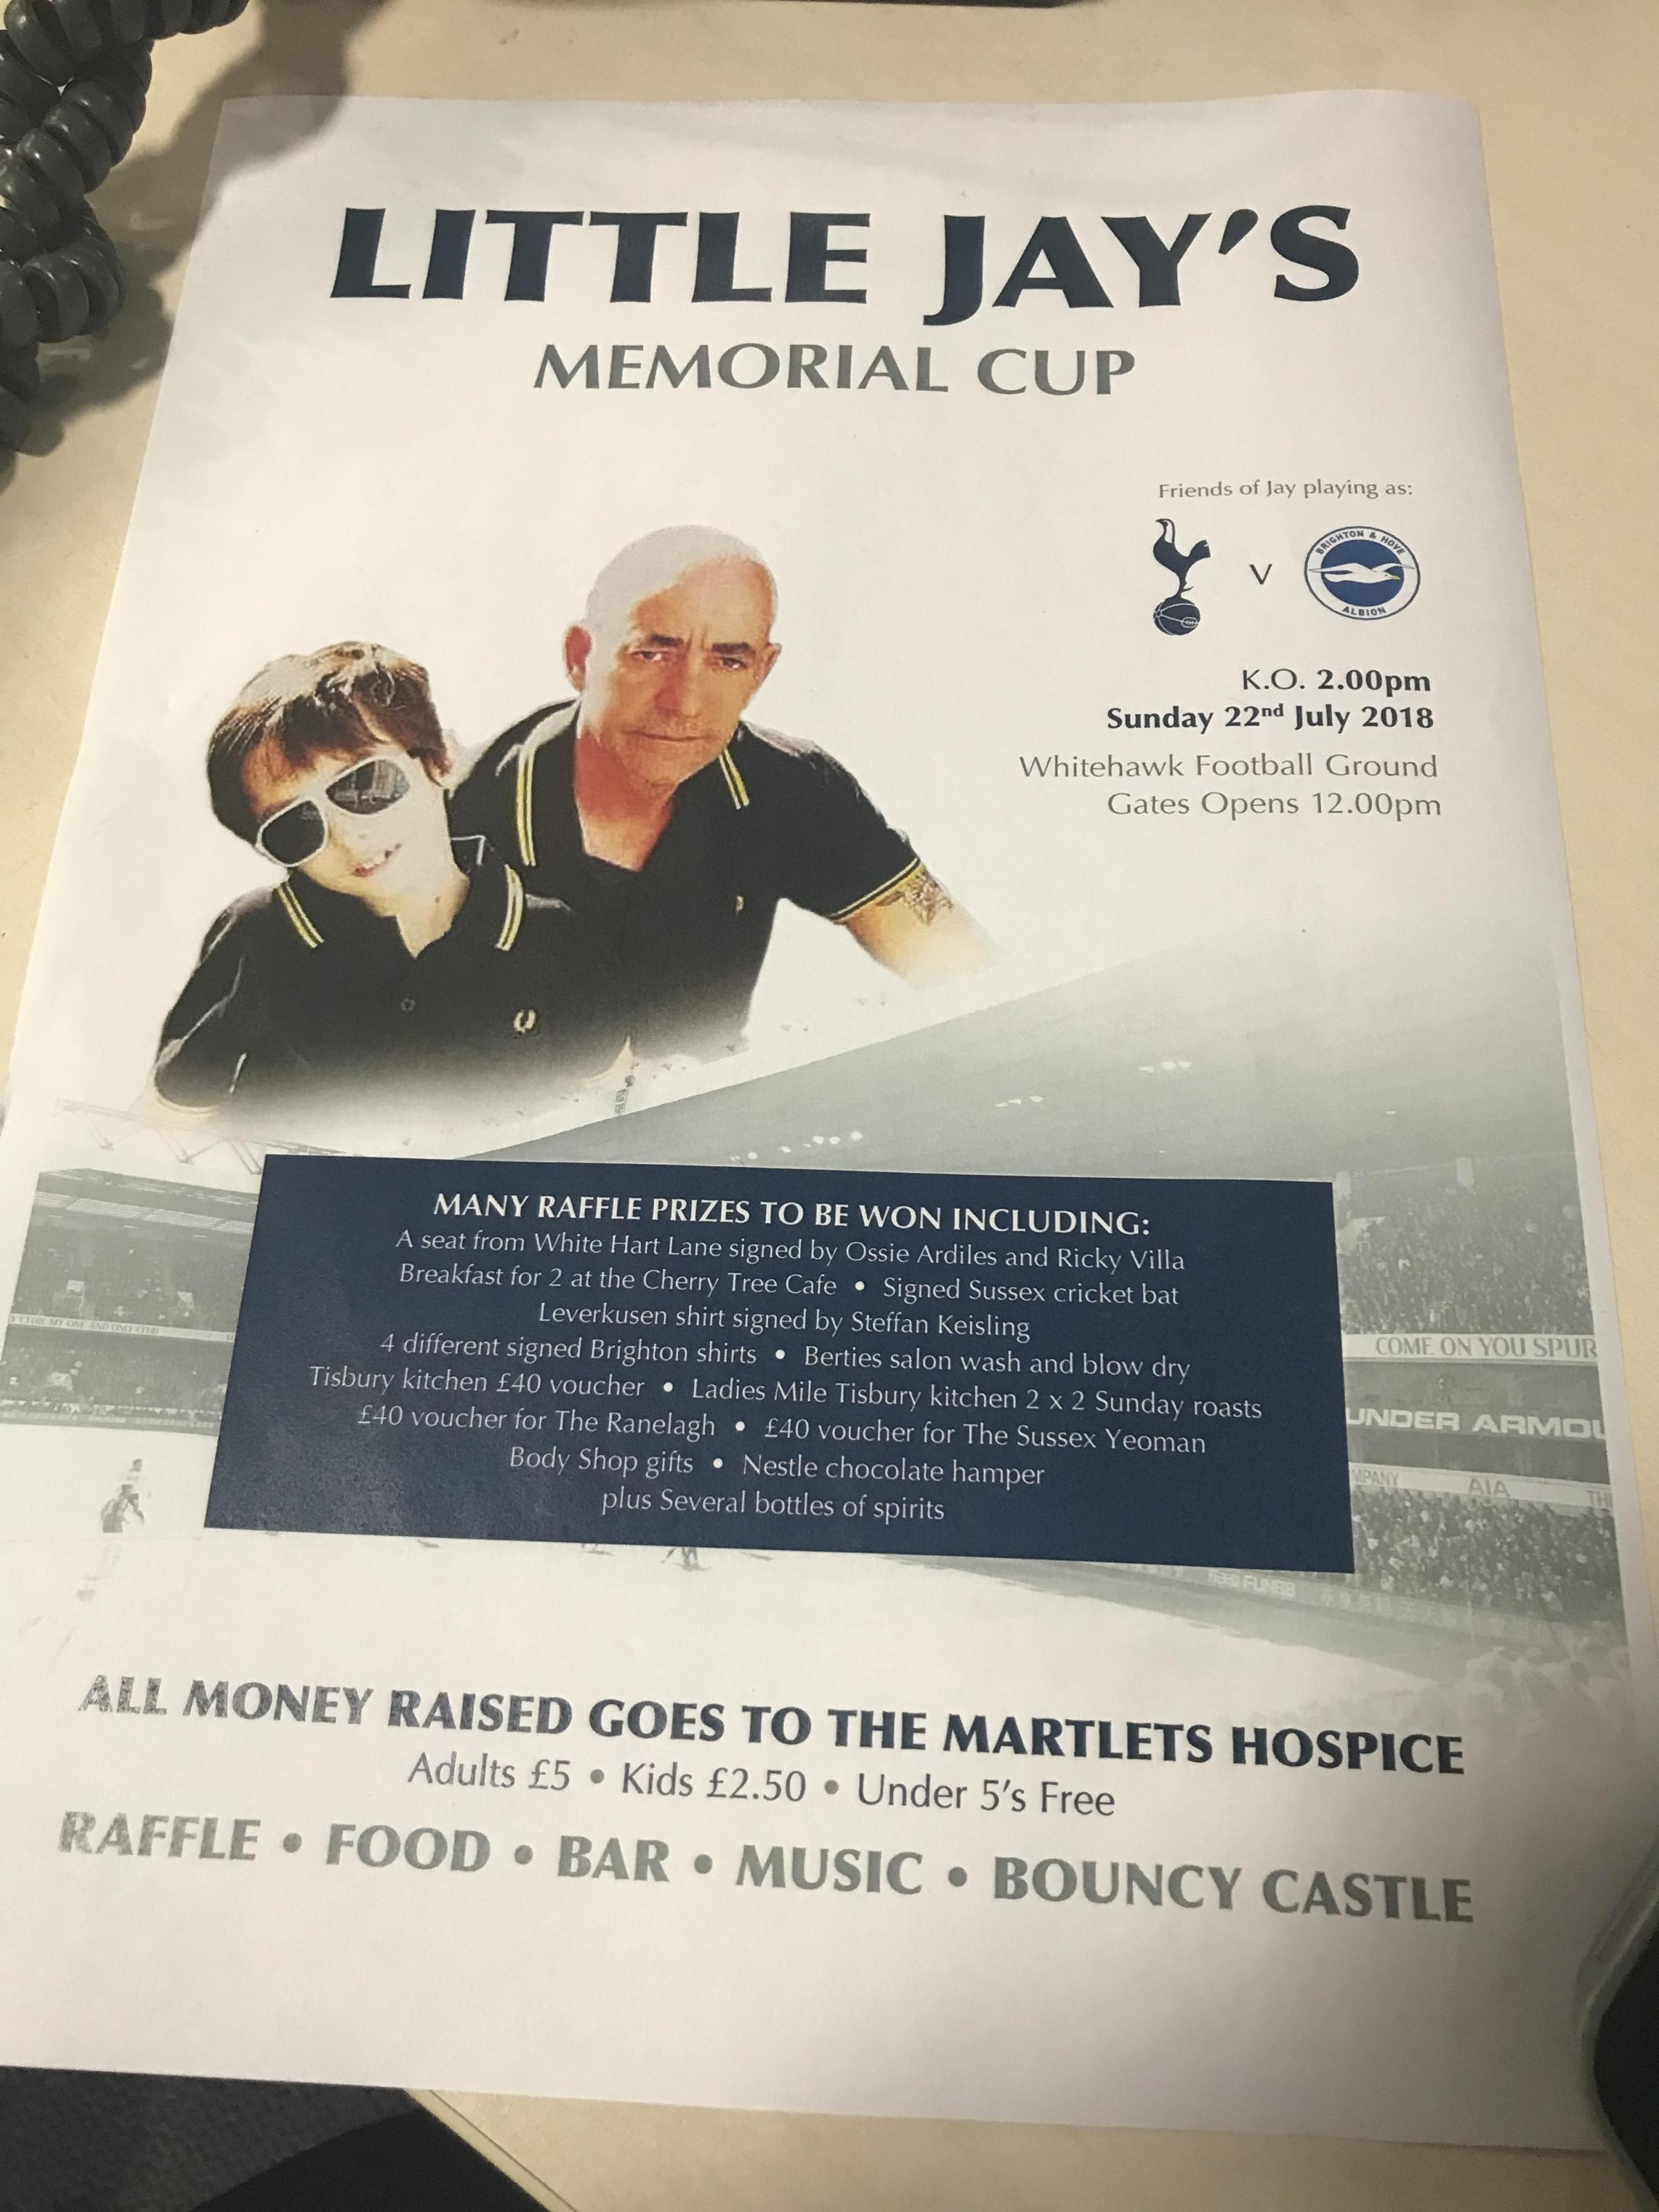 Little Jays charity match - The Martlets hospice